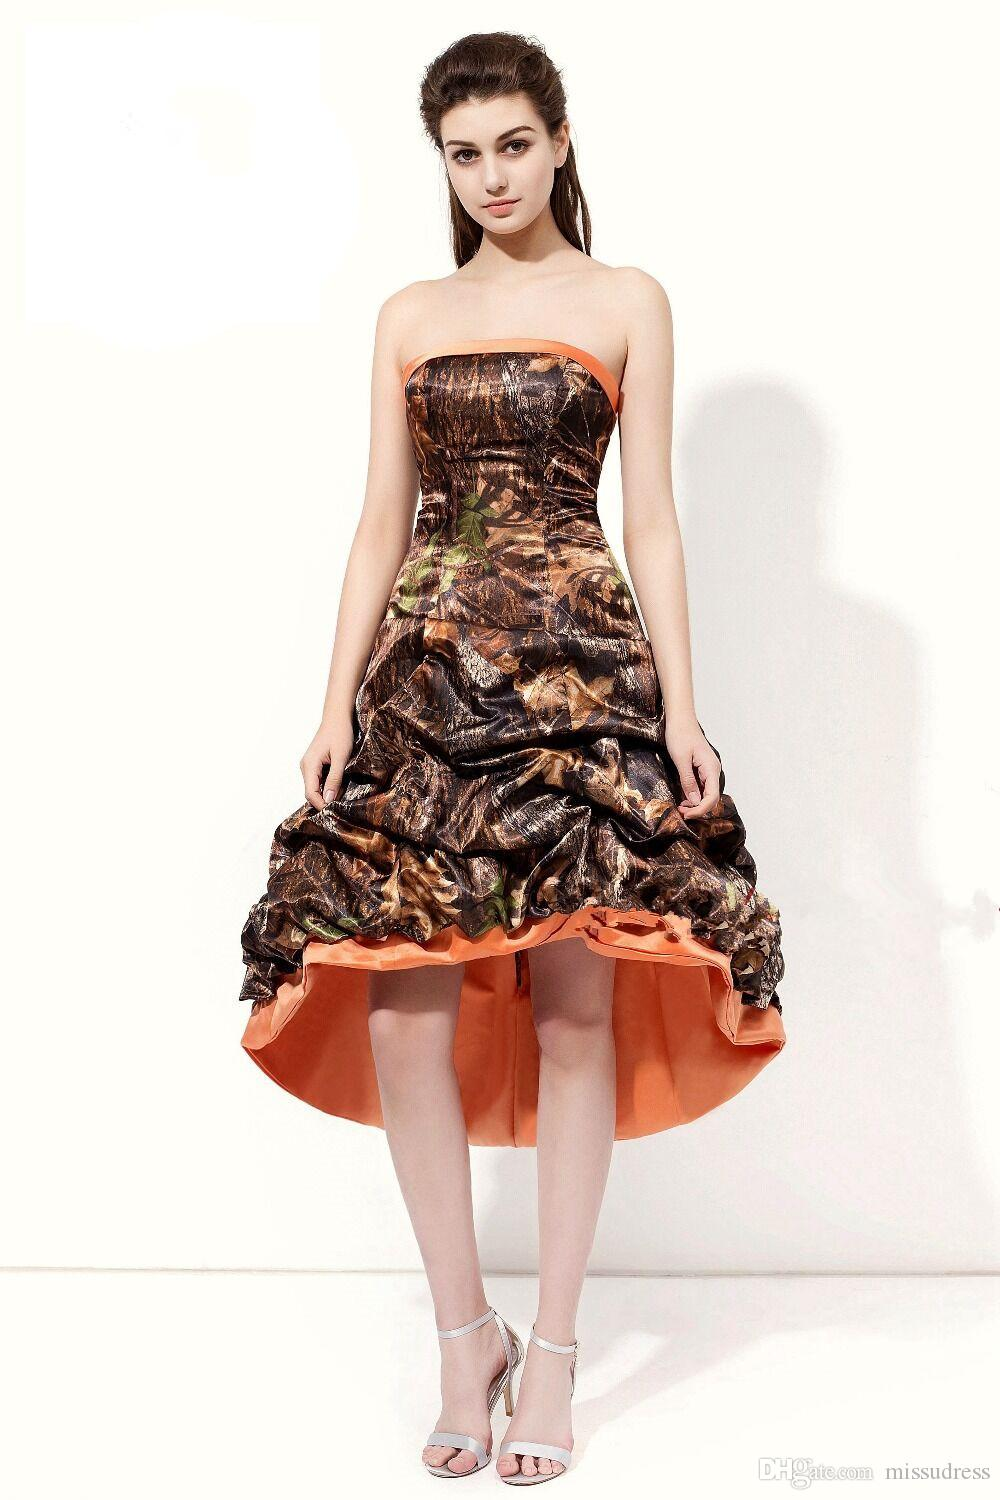 6f3eab65d29be Camo Prom Dresses Strapless High Low Prom Gowns camouflage Sleeveless  Strapless Evening Dress For Women 2018 Real photos